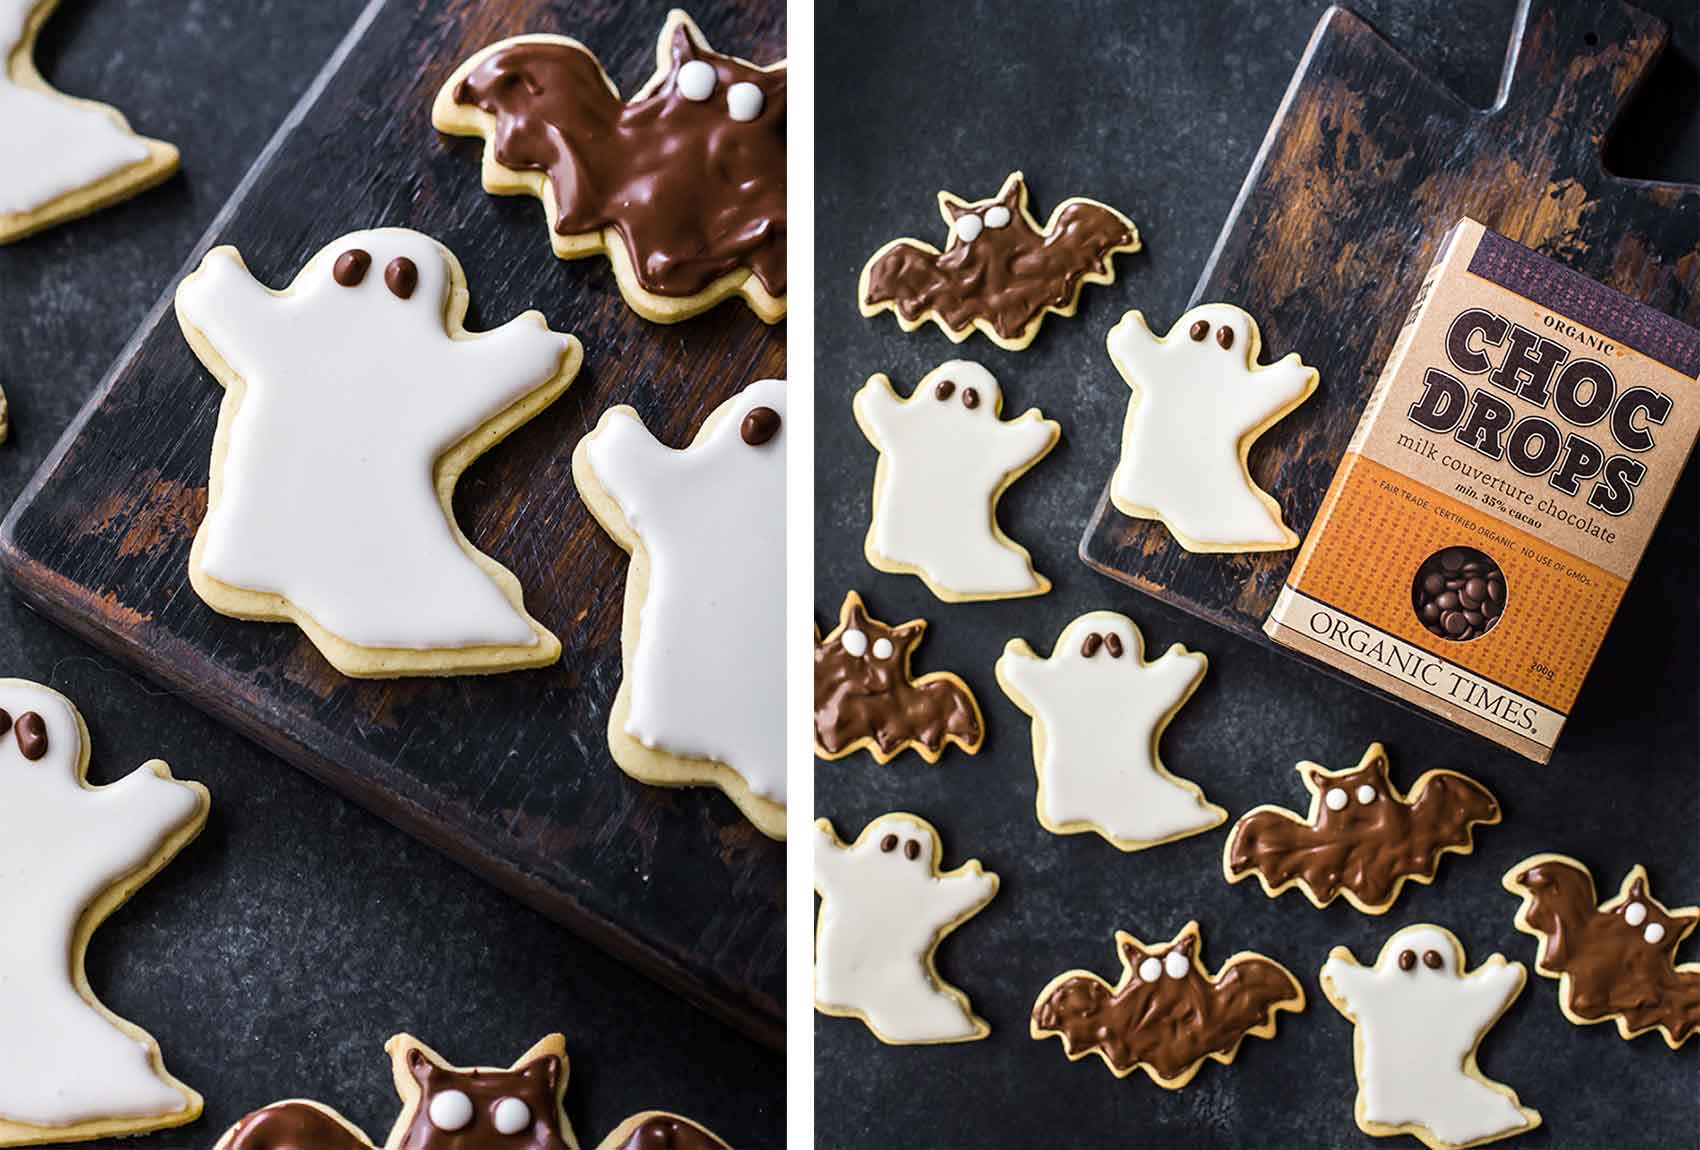 Organic Times Milk Chocolate Drops next to a tray of Halloween ghost and bat cookies